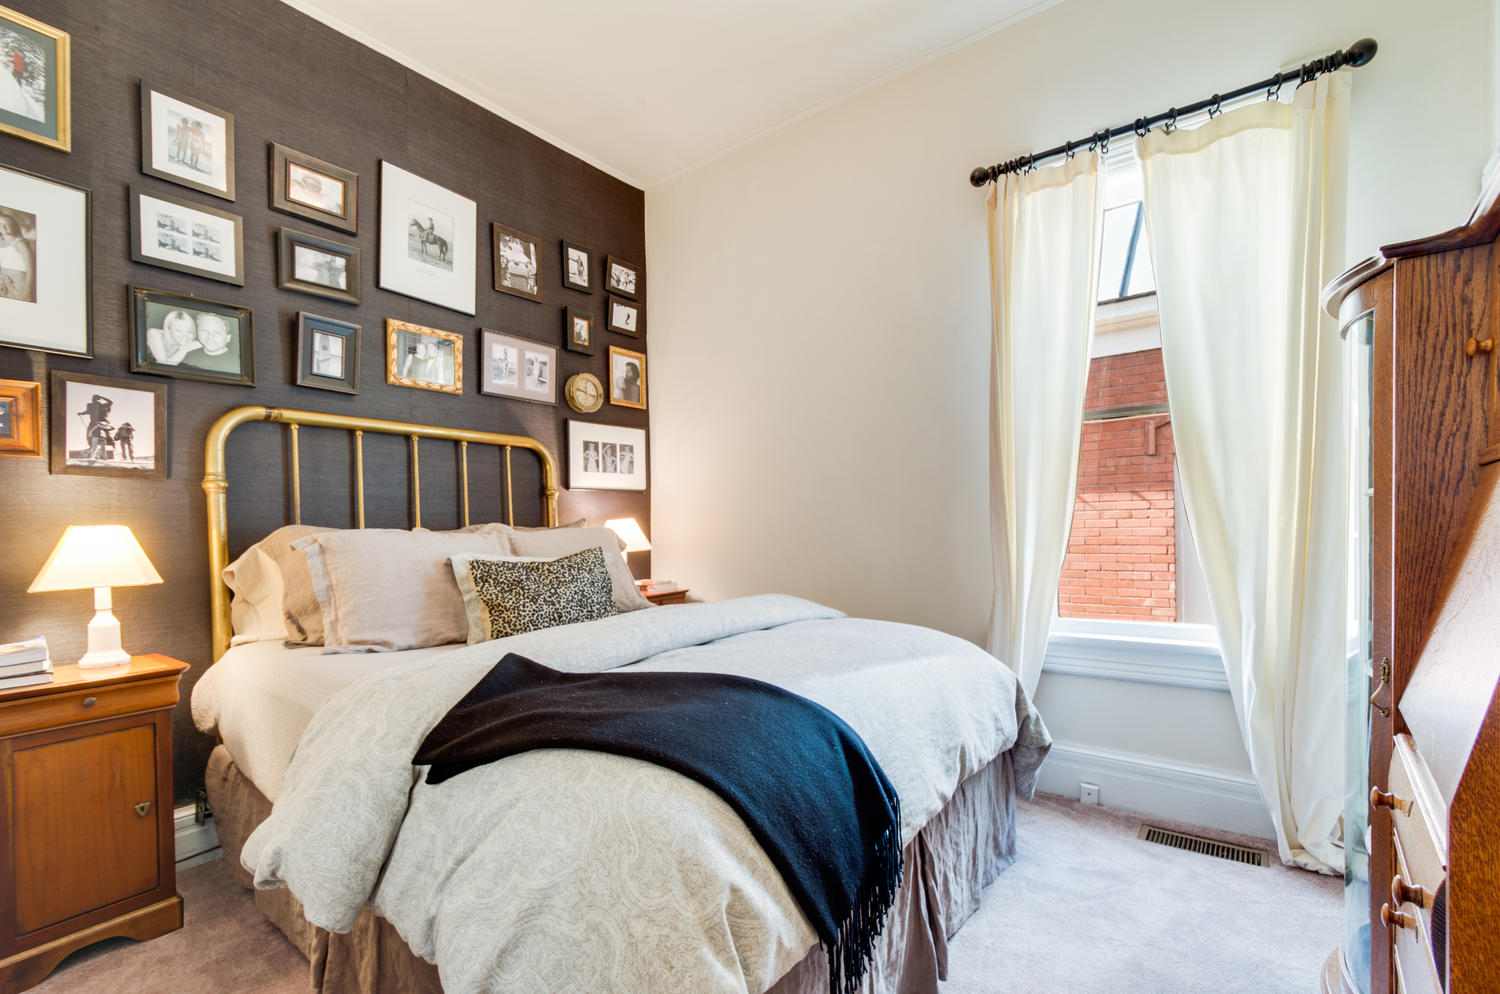 Master bedroom with a bed and a nightstand